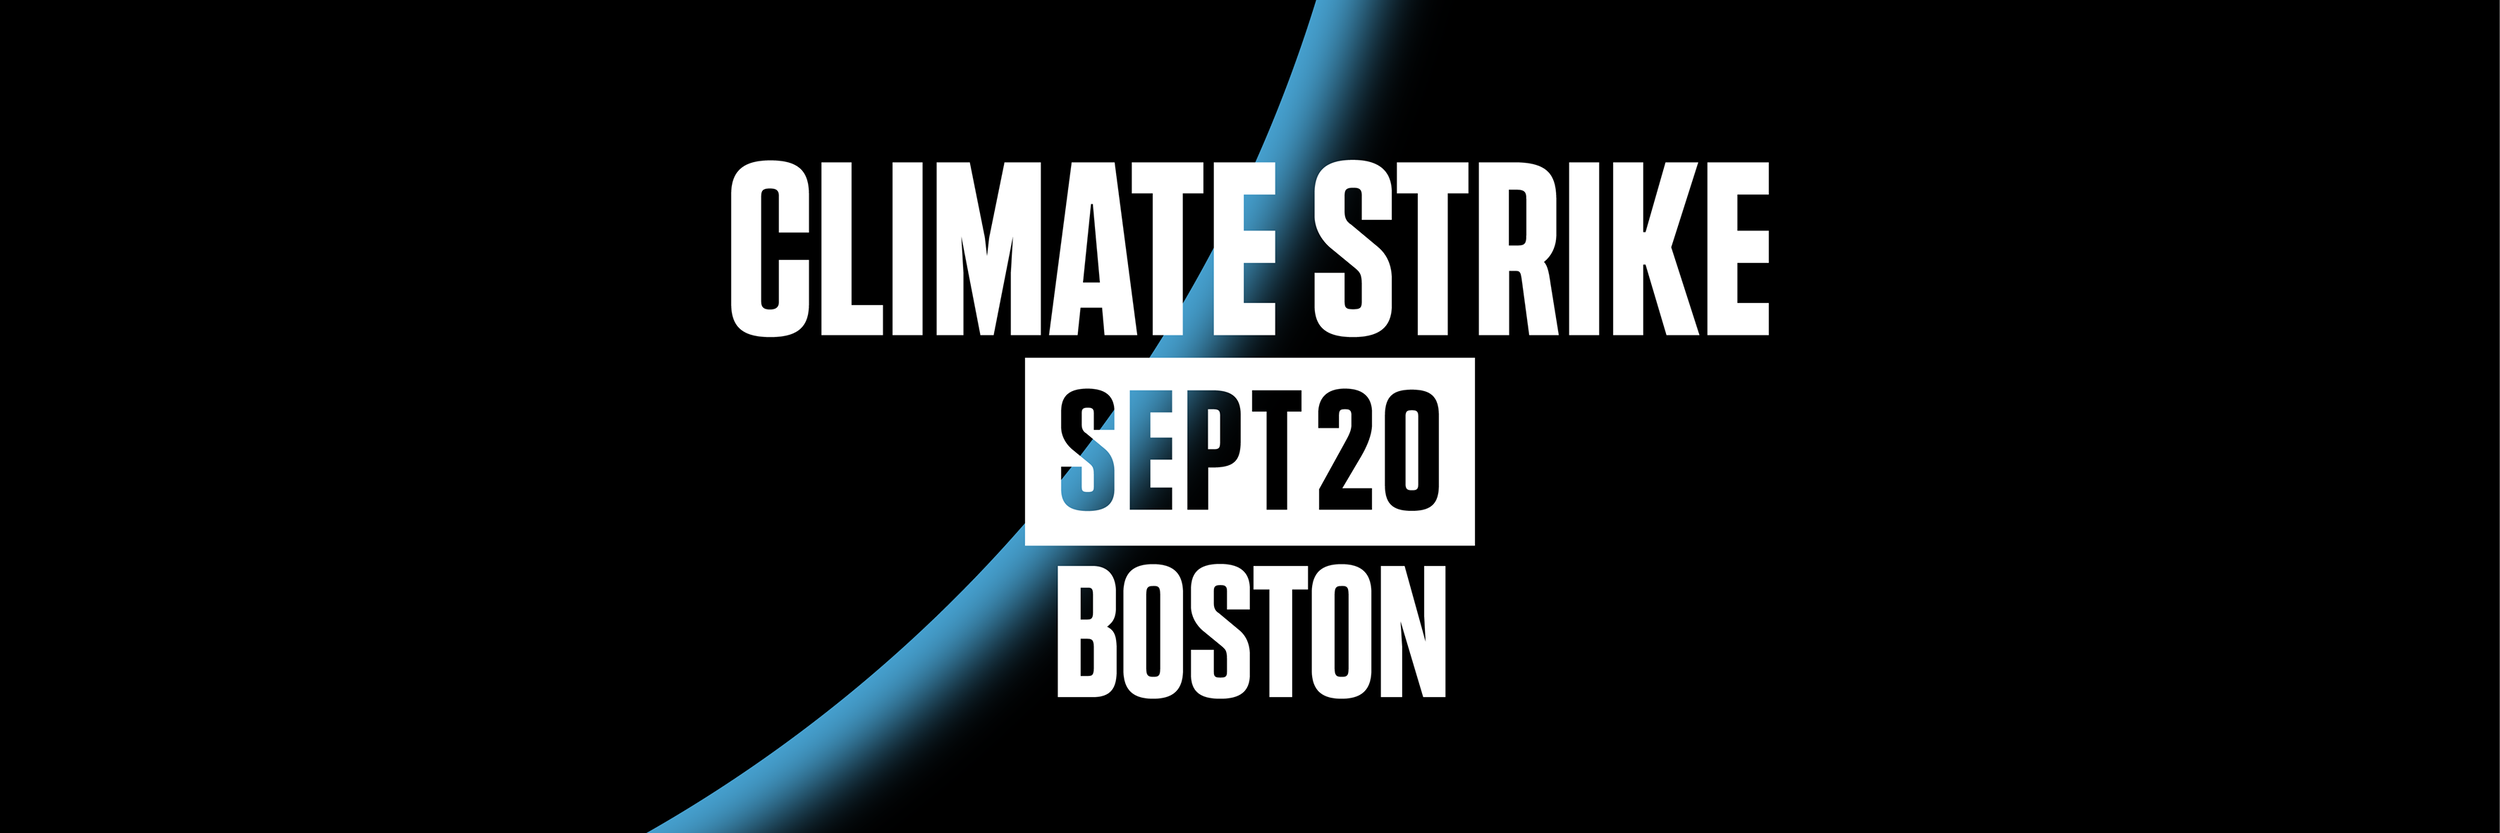 Climate Strike Art Black.png